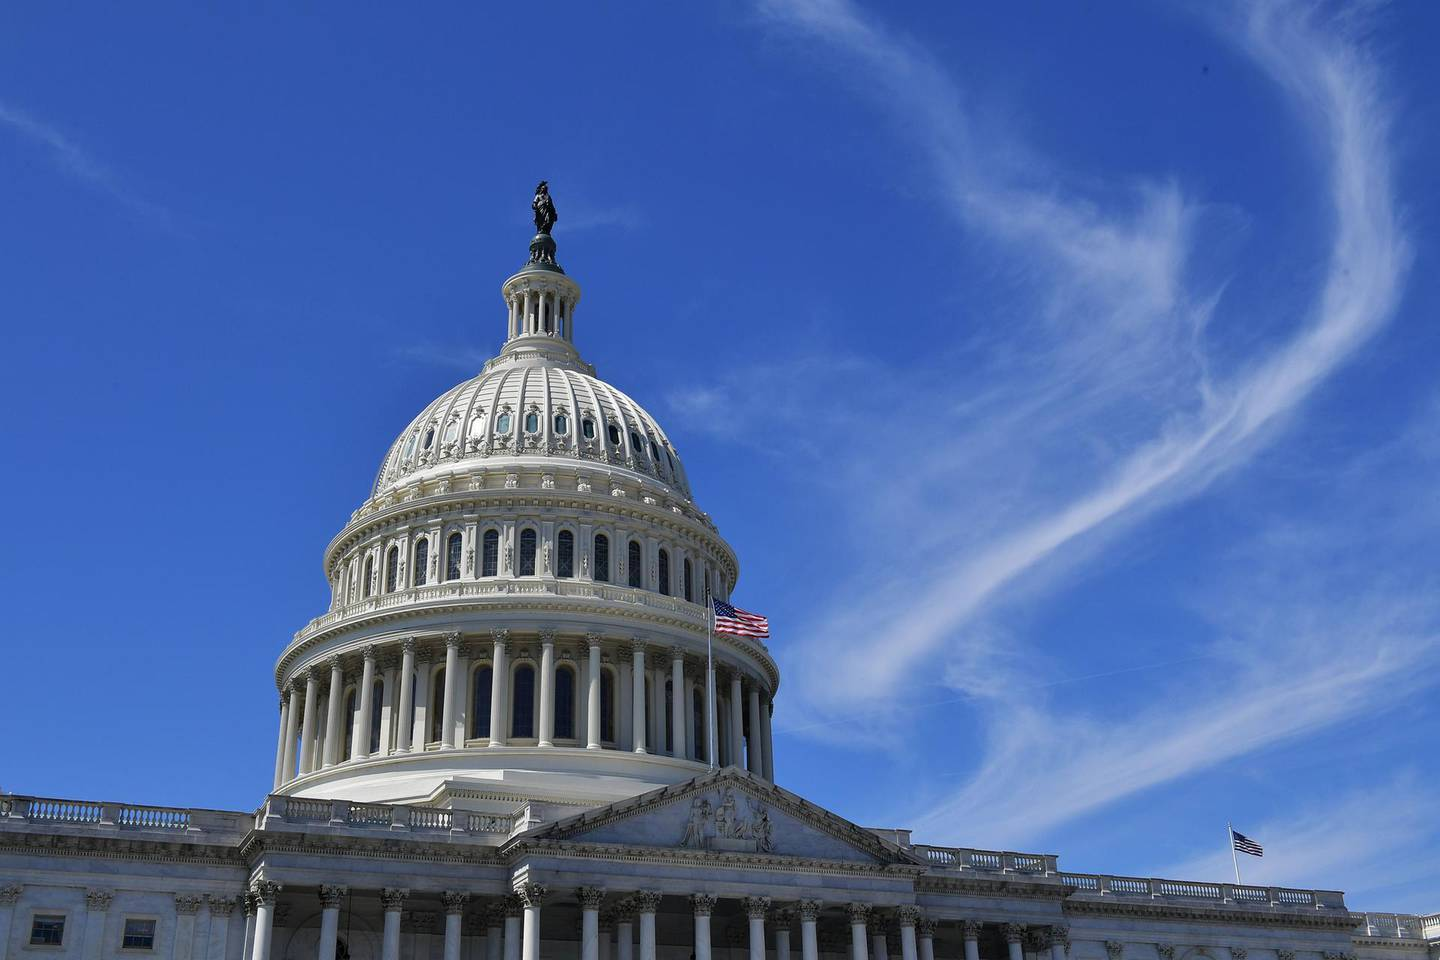 (FILES) In this file photo the dome of the US Capitol is seen in Washington, DC on March 27, 2019. US lawmakers appeared on track December 20, 2020 to pass a roughly $900 billion Covid-19 relief package for millions of Americans, after Democrats and Republicans reached a compromise on the future spending powers of the Federal Reserve. The package is expected to include aid for vaccine distribution and logistics, extra jobless benefits of $300 per week, and a new round of $600 stimulus checks -- half the amount provided in checks distributed last March under the CARES Act.  / AFP / MANDEL NGAN